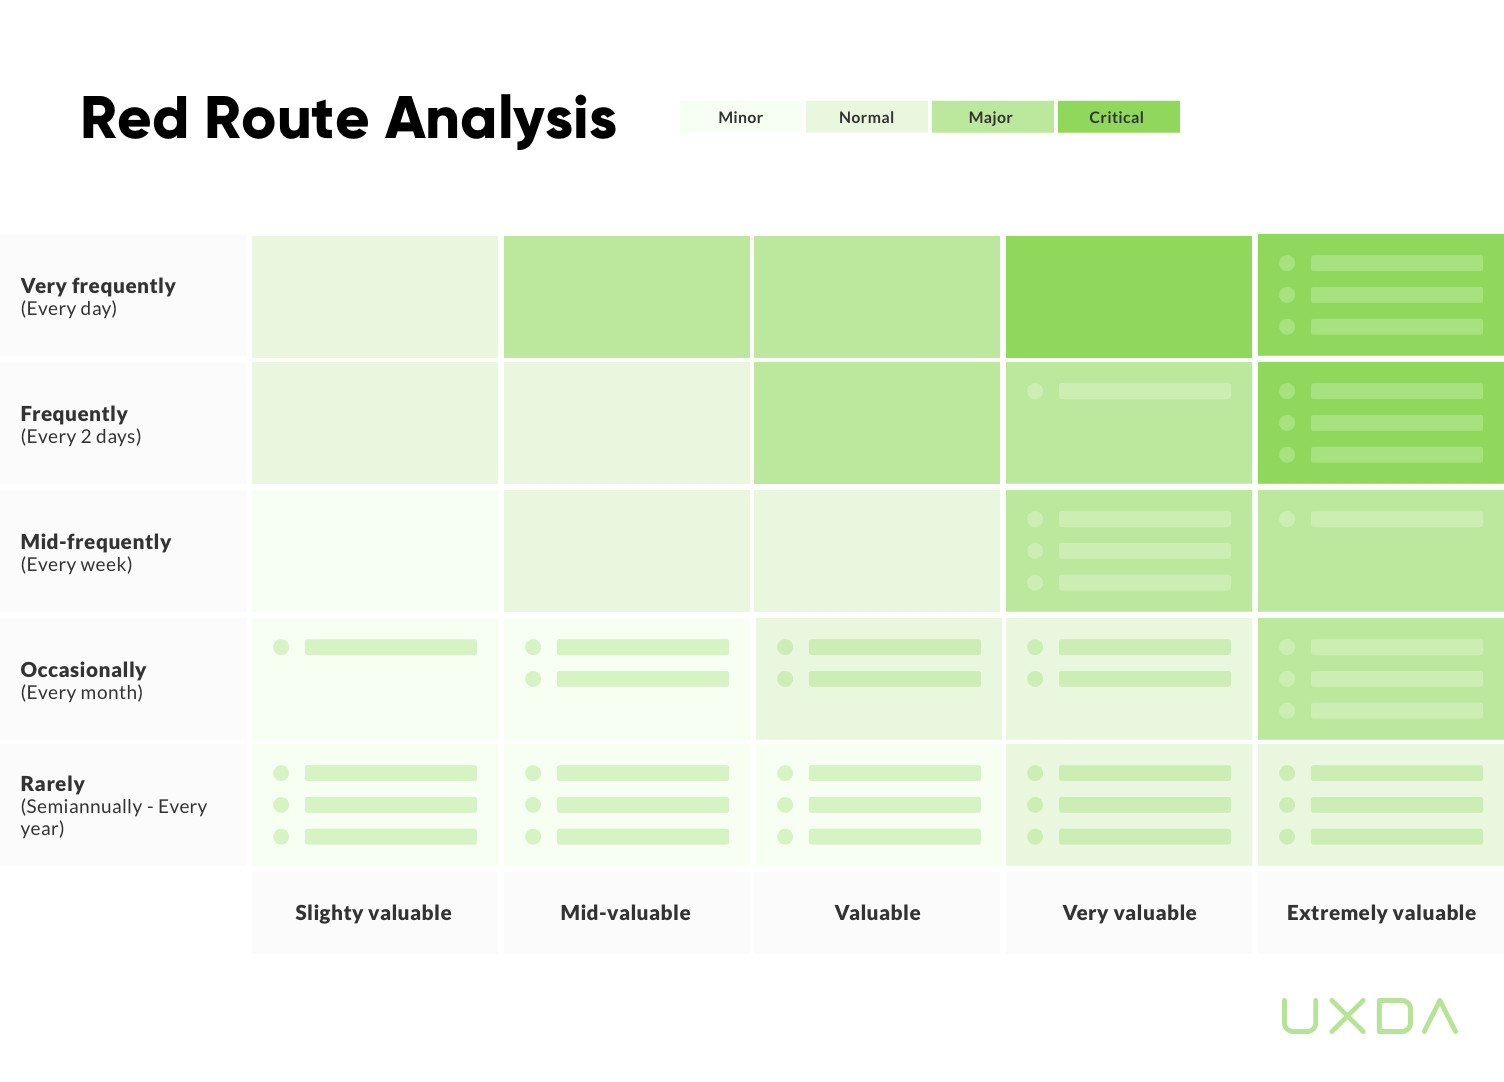 ux-design-banking-red-route-analysis-uxda-work-process.jpg